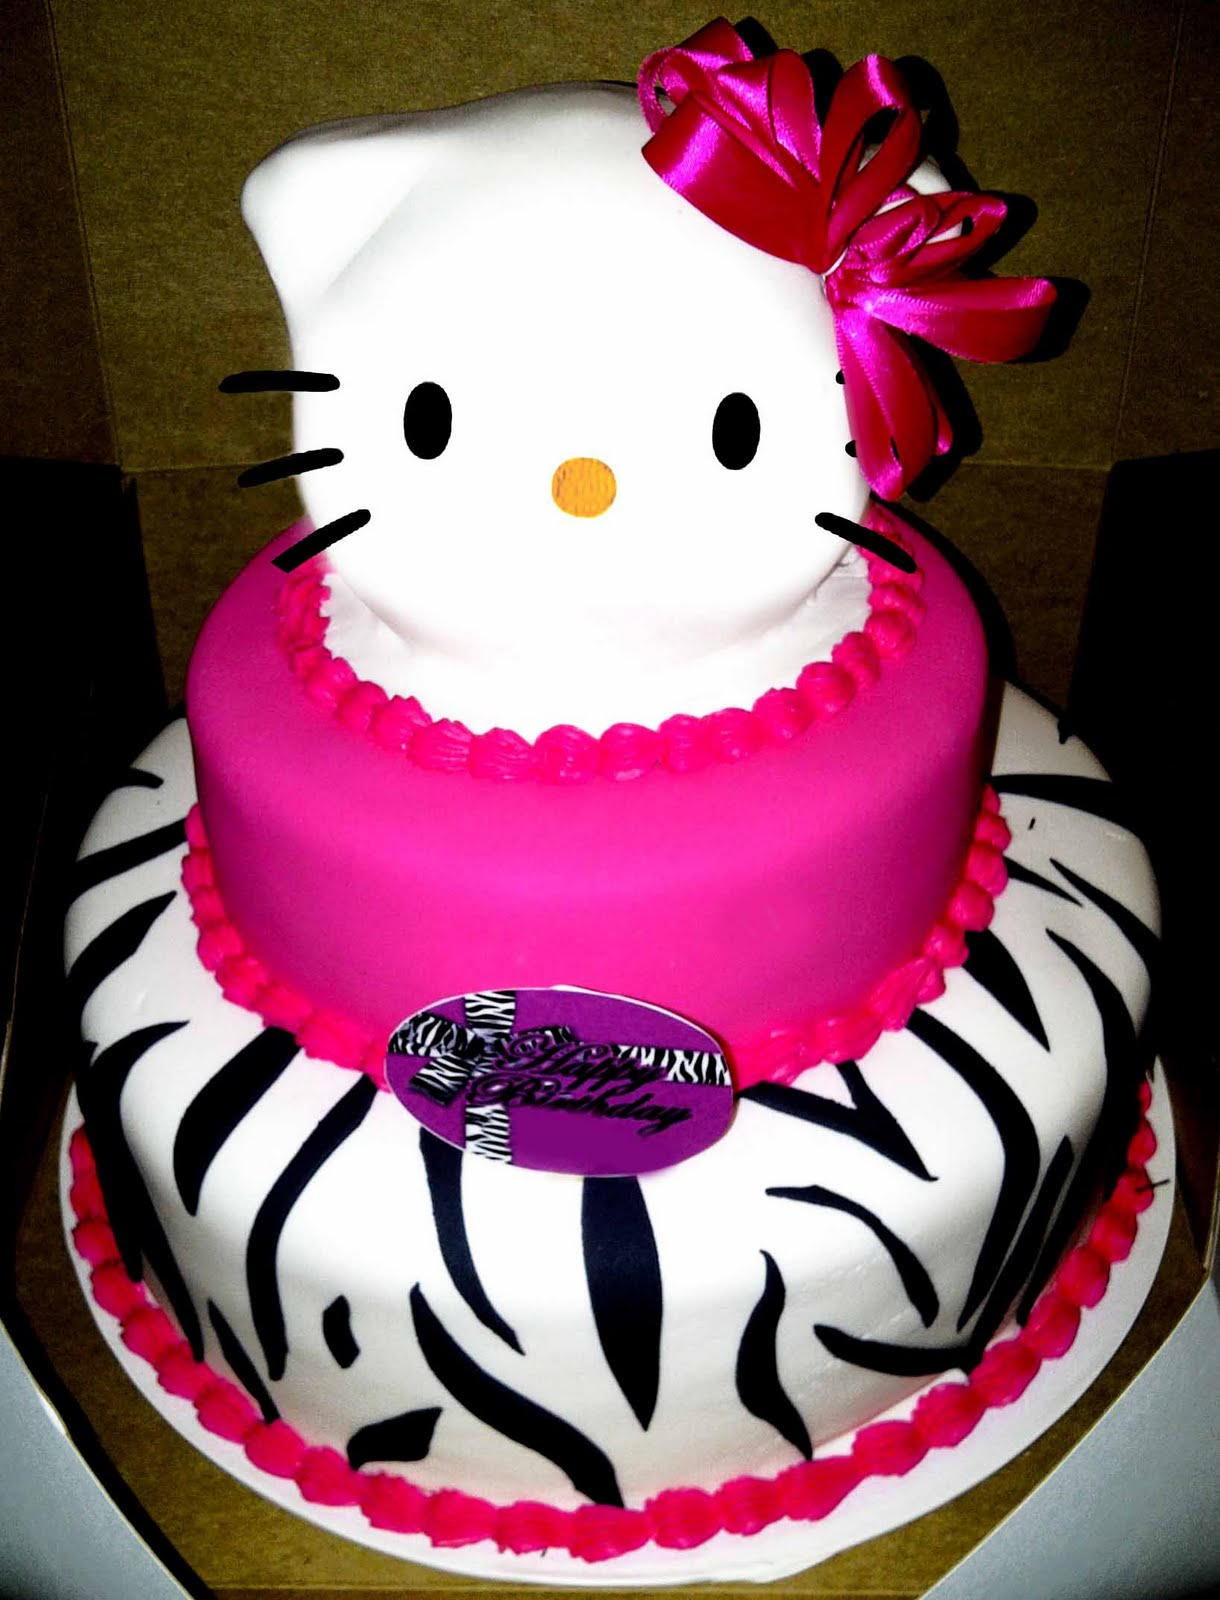 Hectors Custom Cakes 3 Tiered Hello Kitty Cake